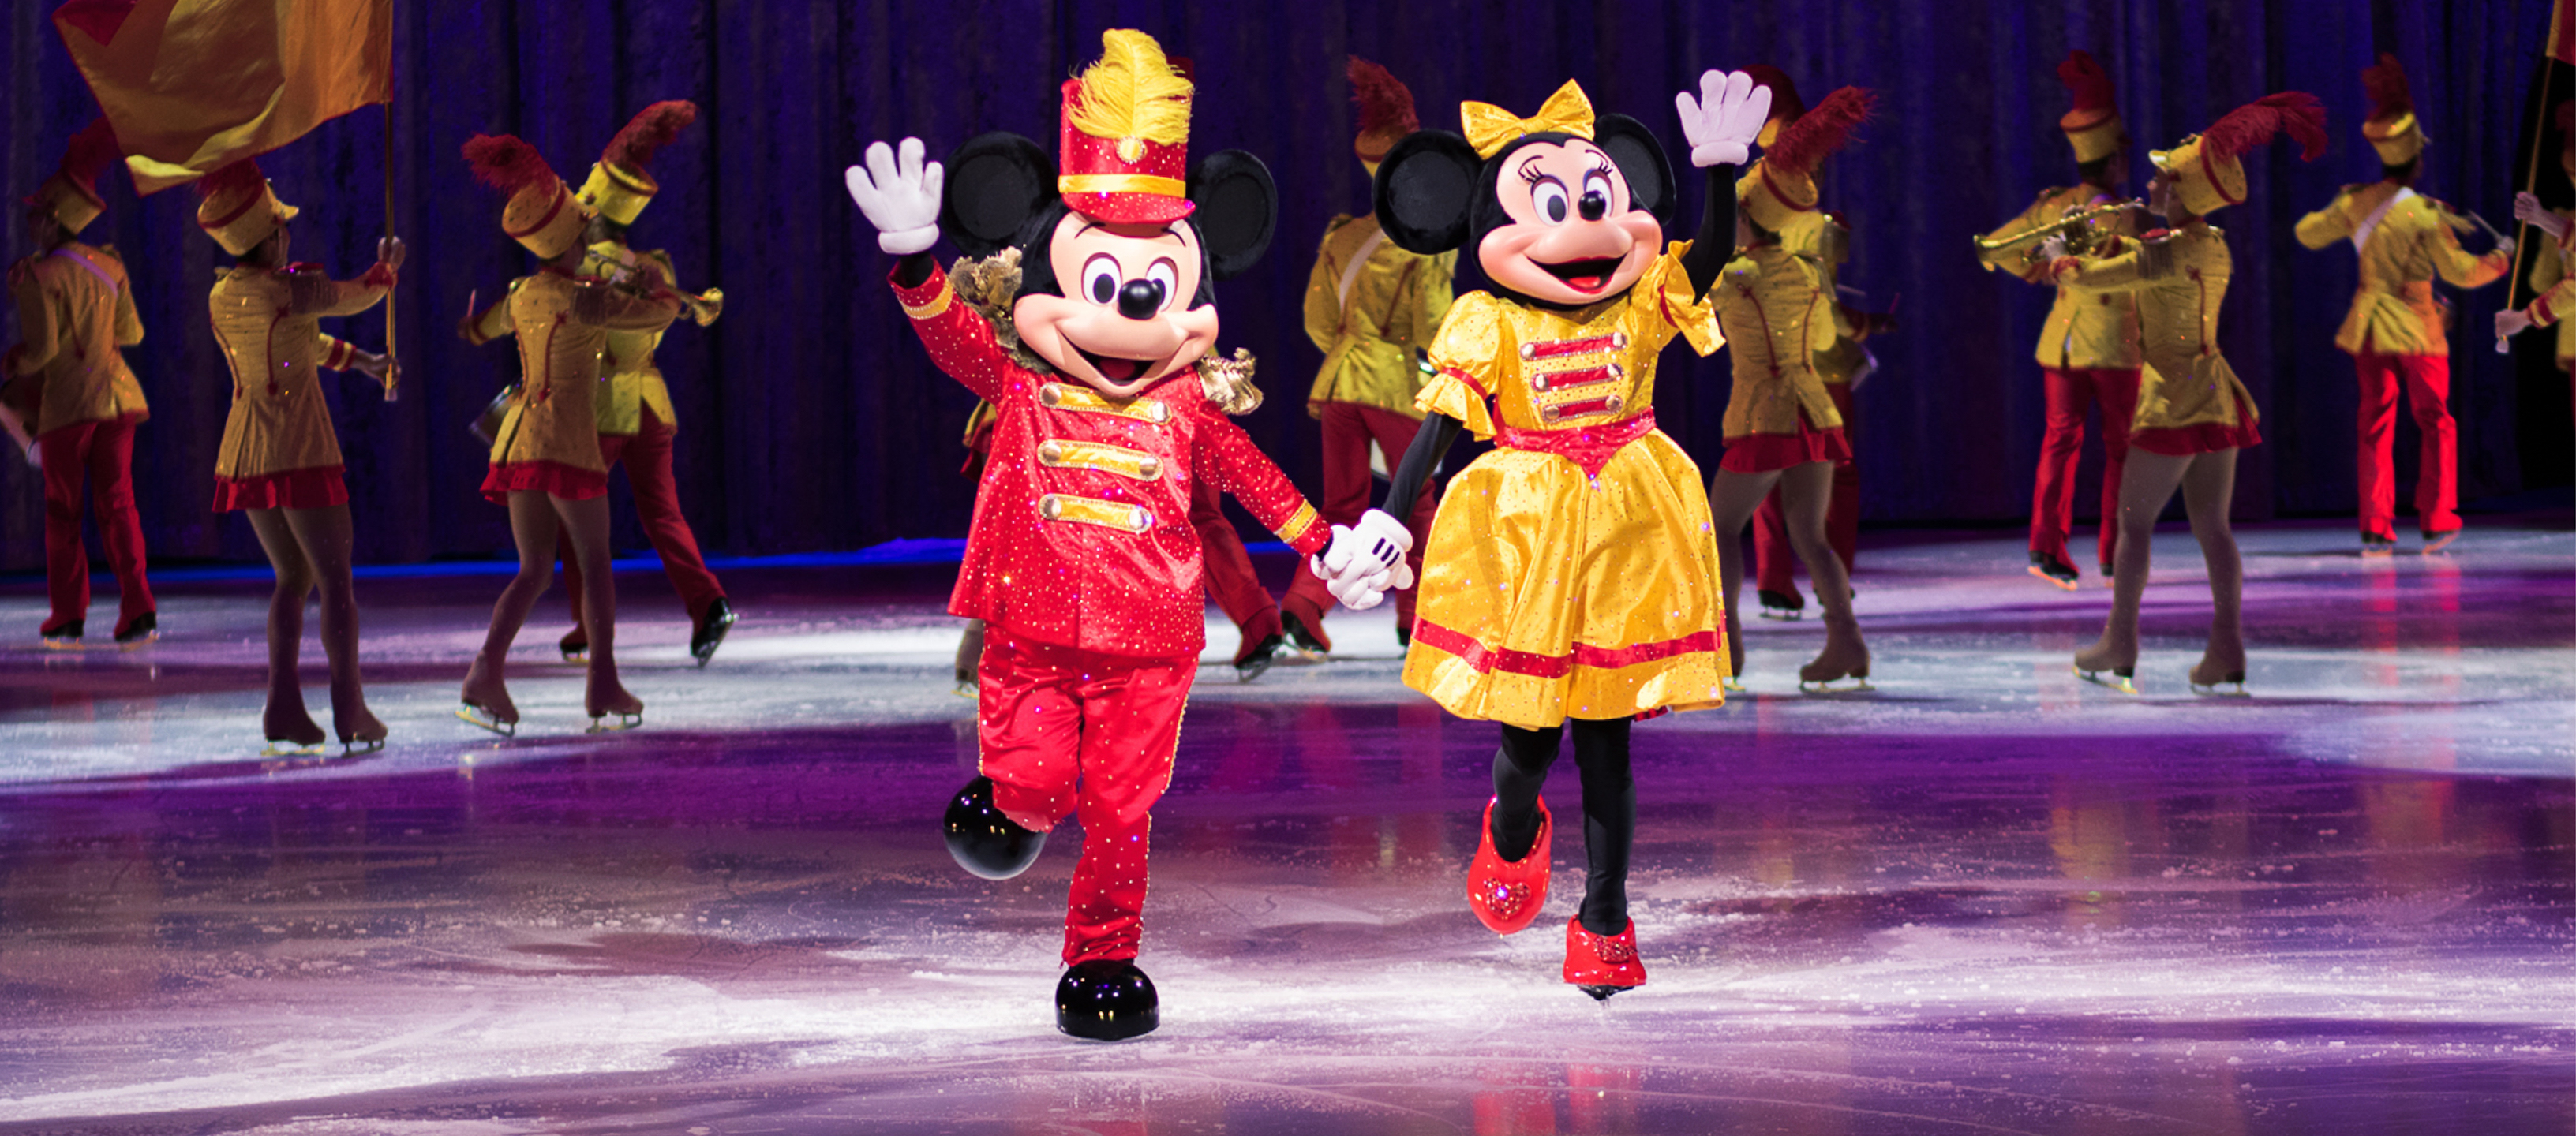 Mickey and Minnie on Ice